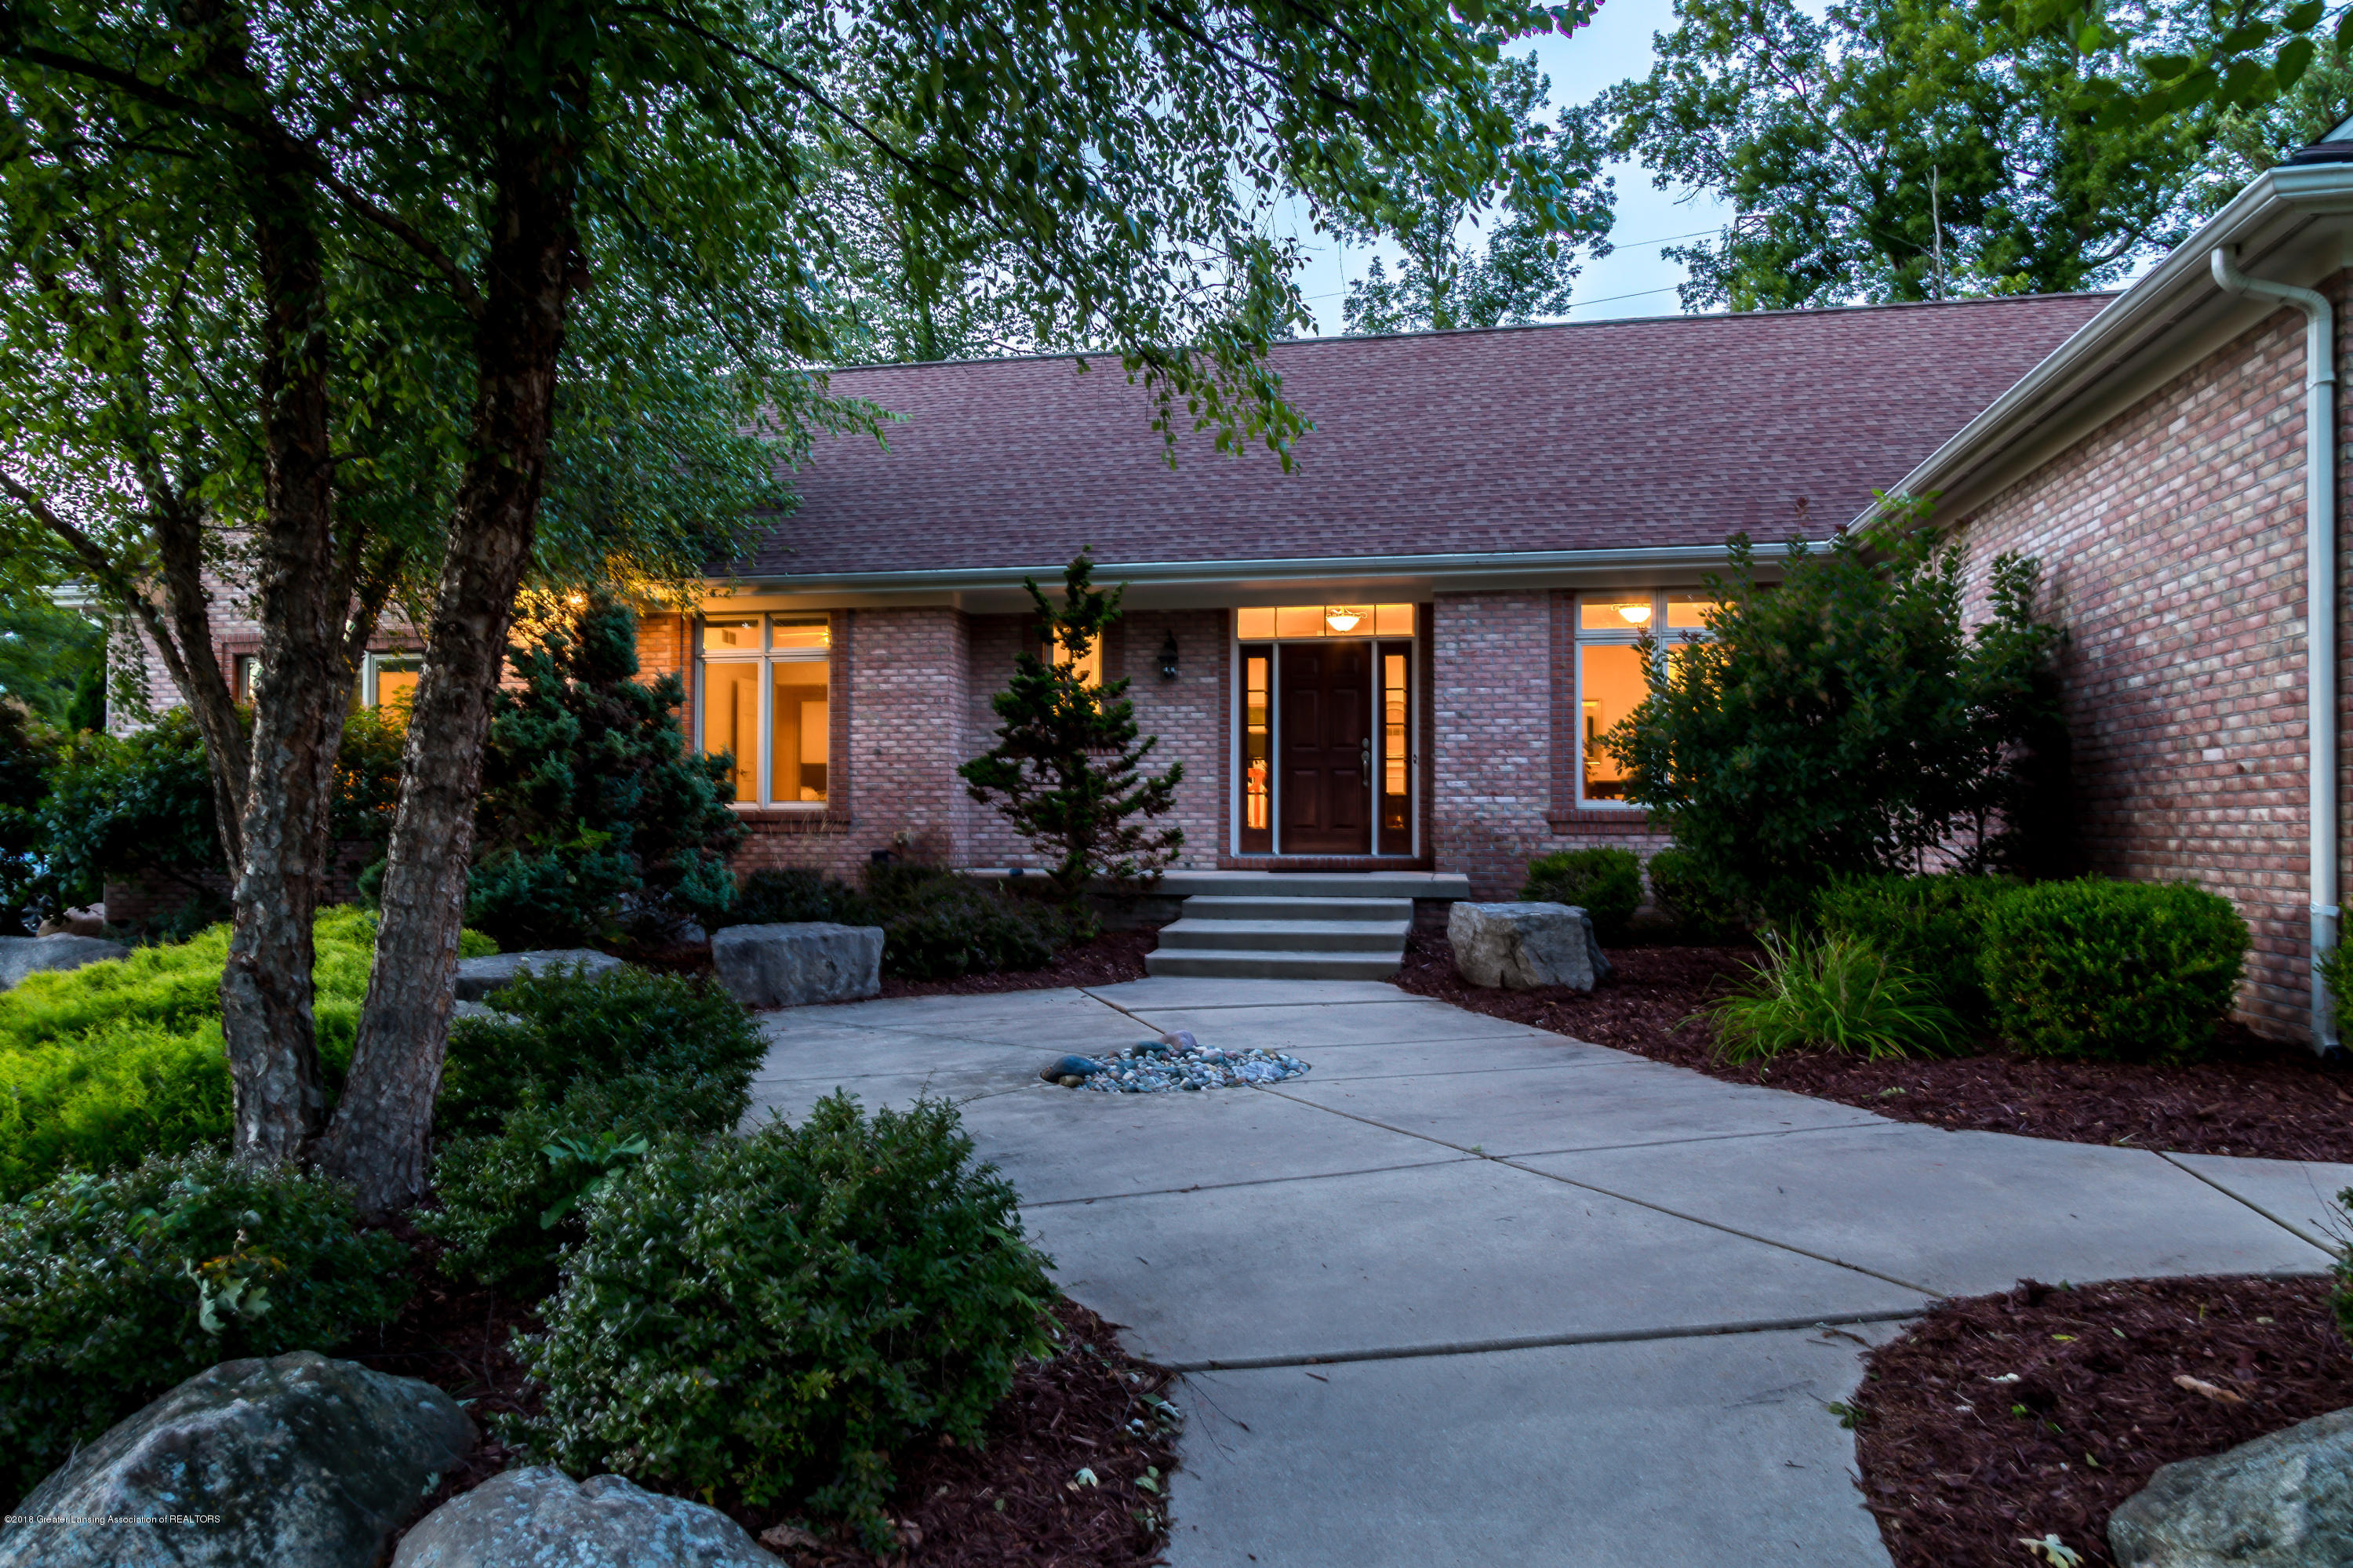 2016 Belwood Dr - 20180902-942A7926-HDR - 30